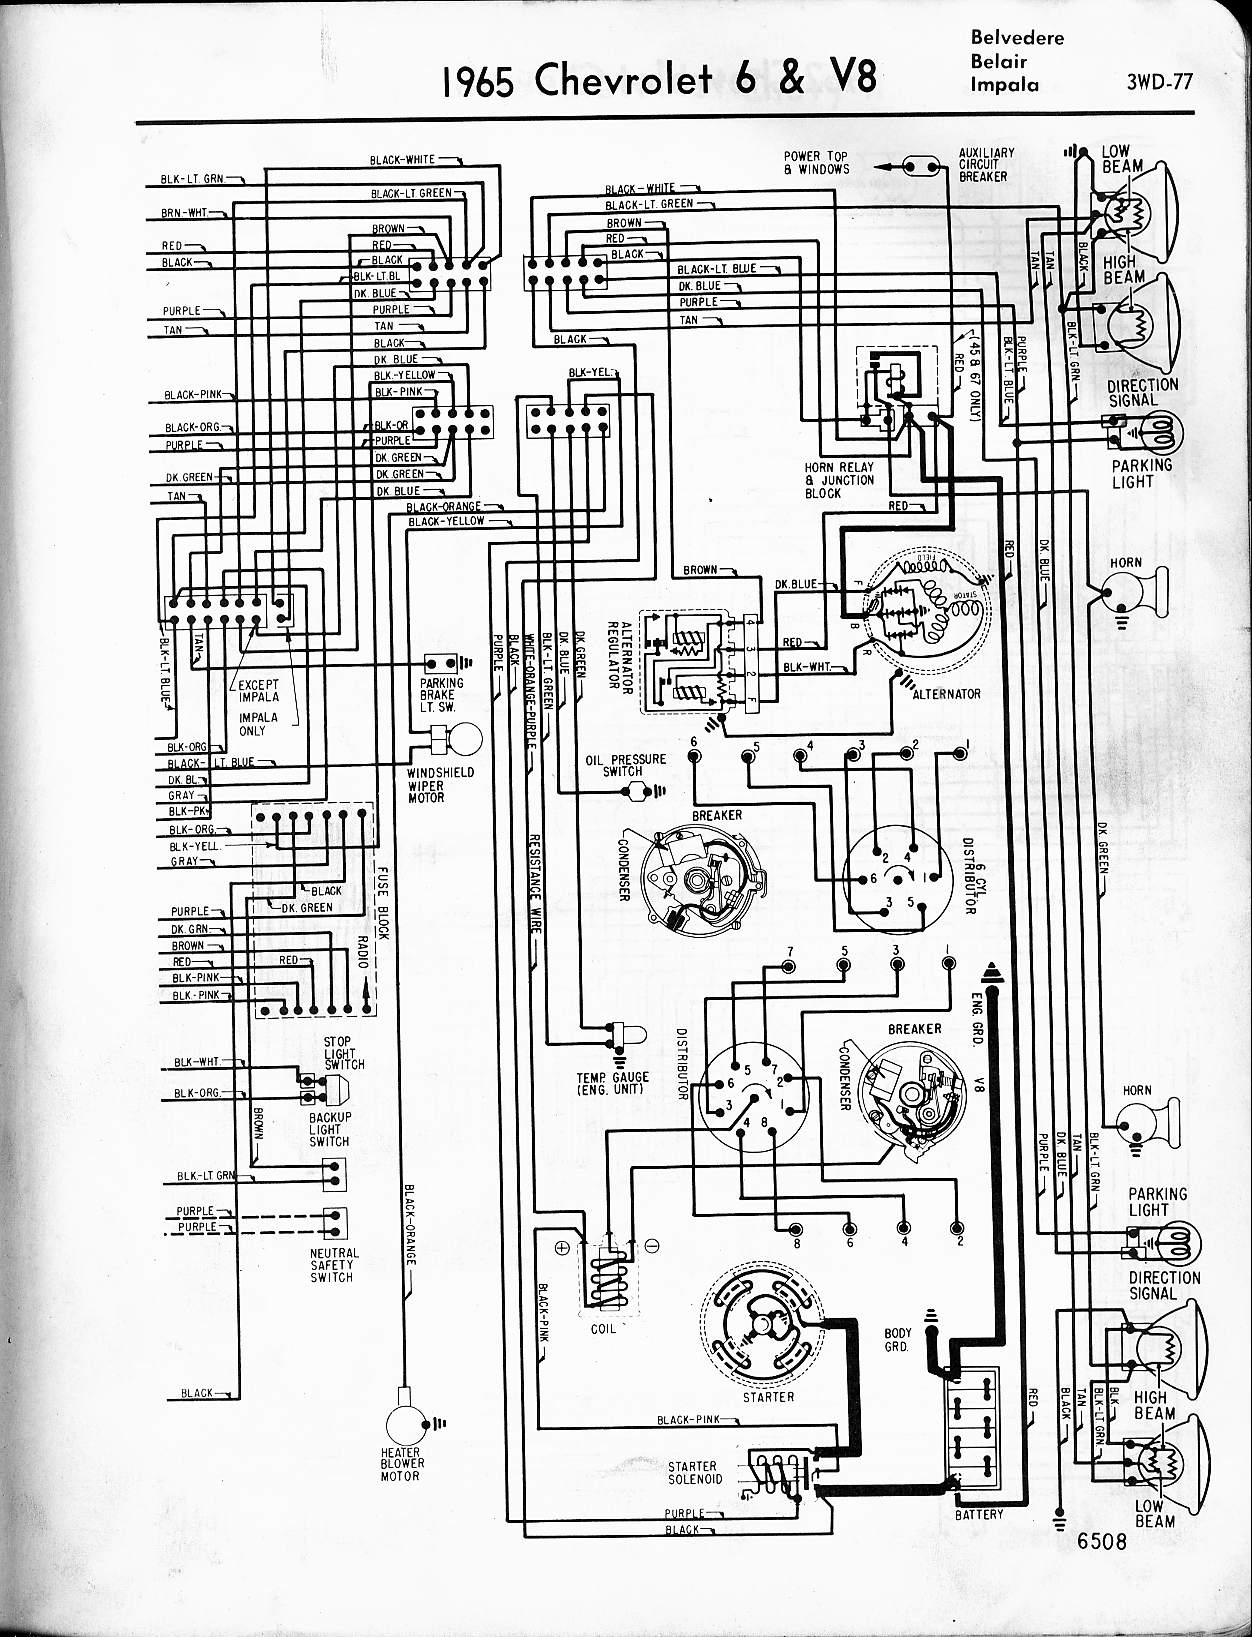 1968 Chevelle Ss Wiring Diagram Furthermore 1969 Diagrams 2010 Camaro Headlight Wire Chevy Rh Wizard Com 1967